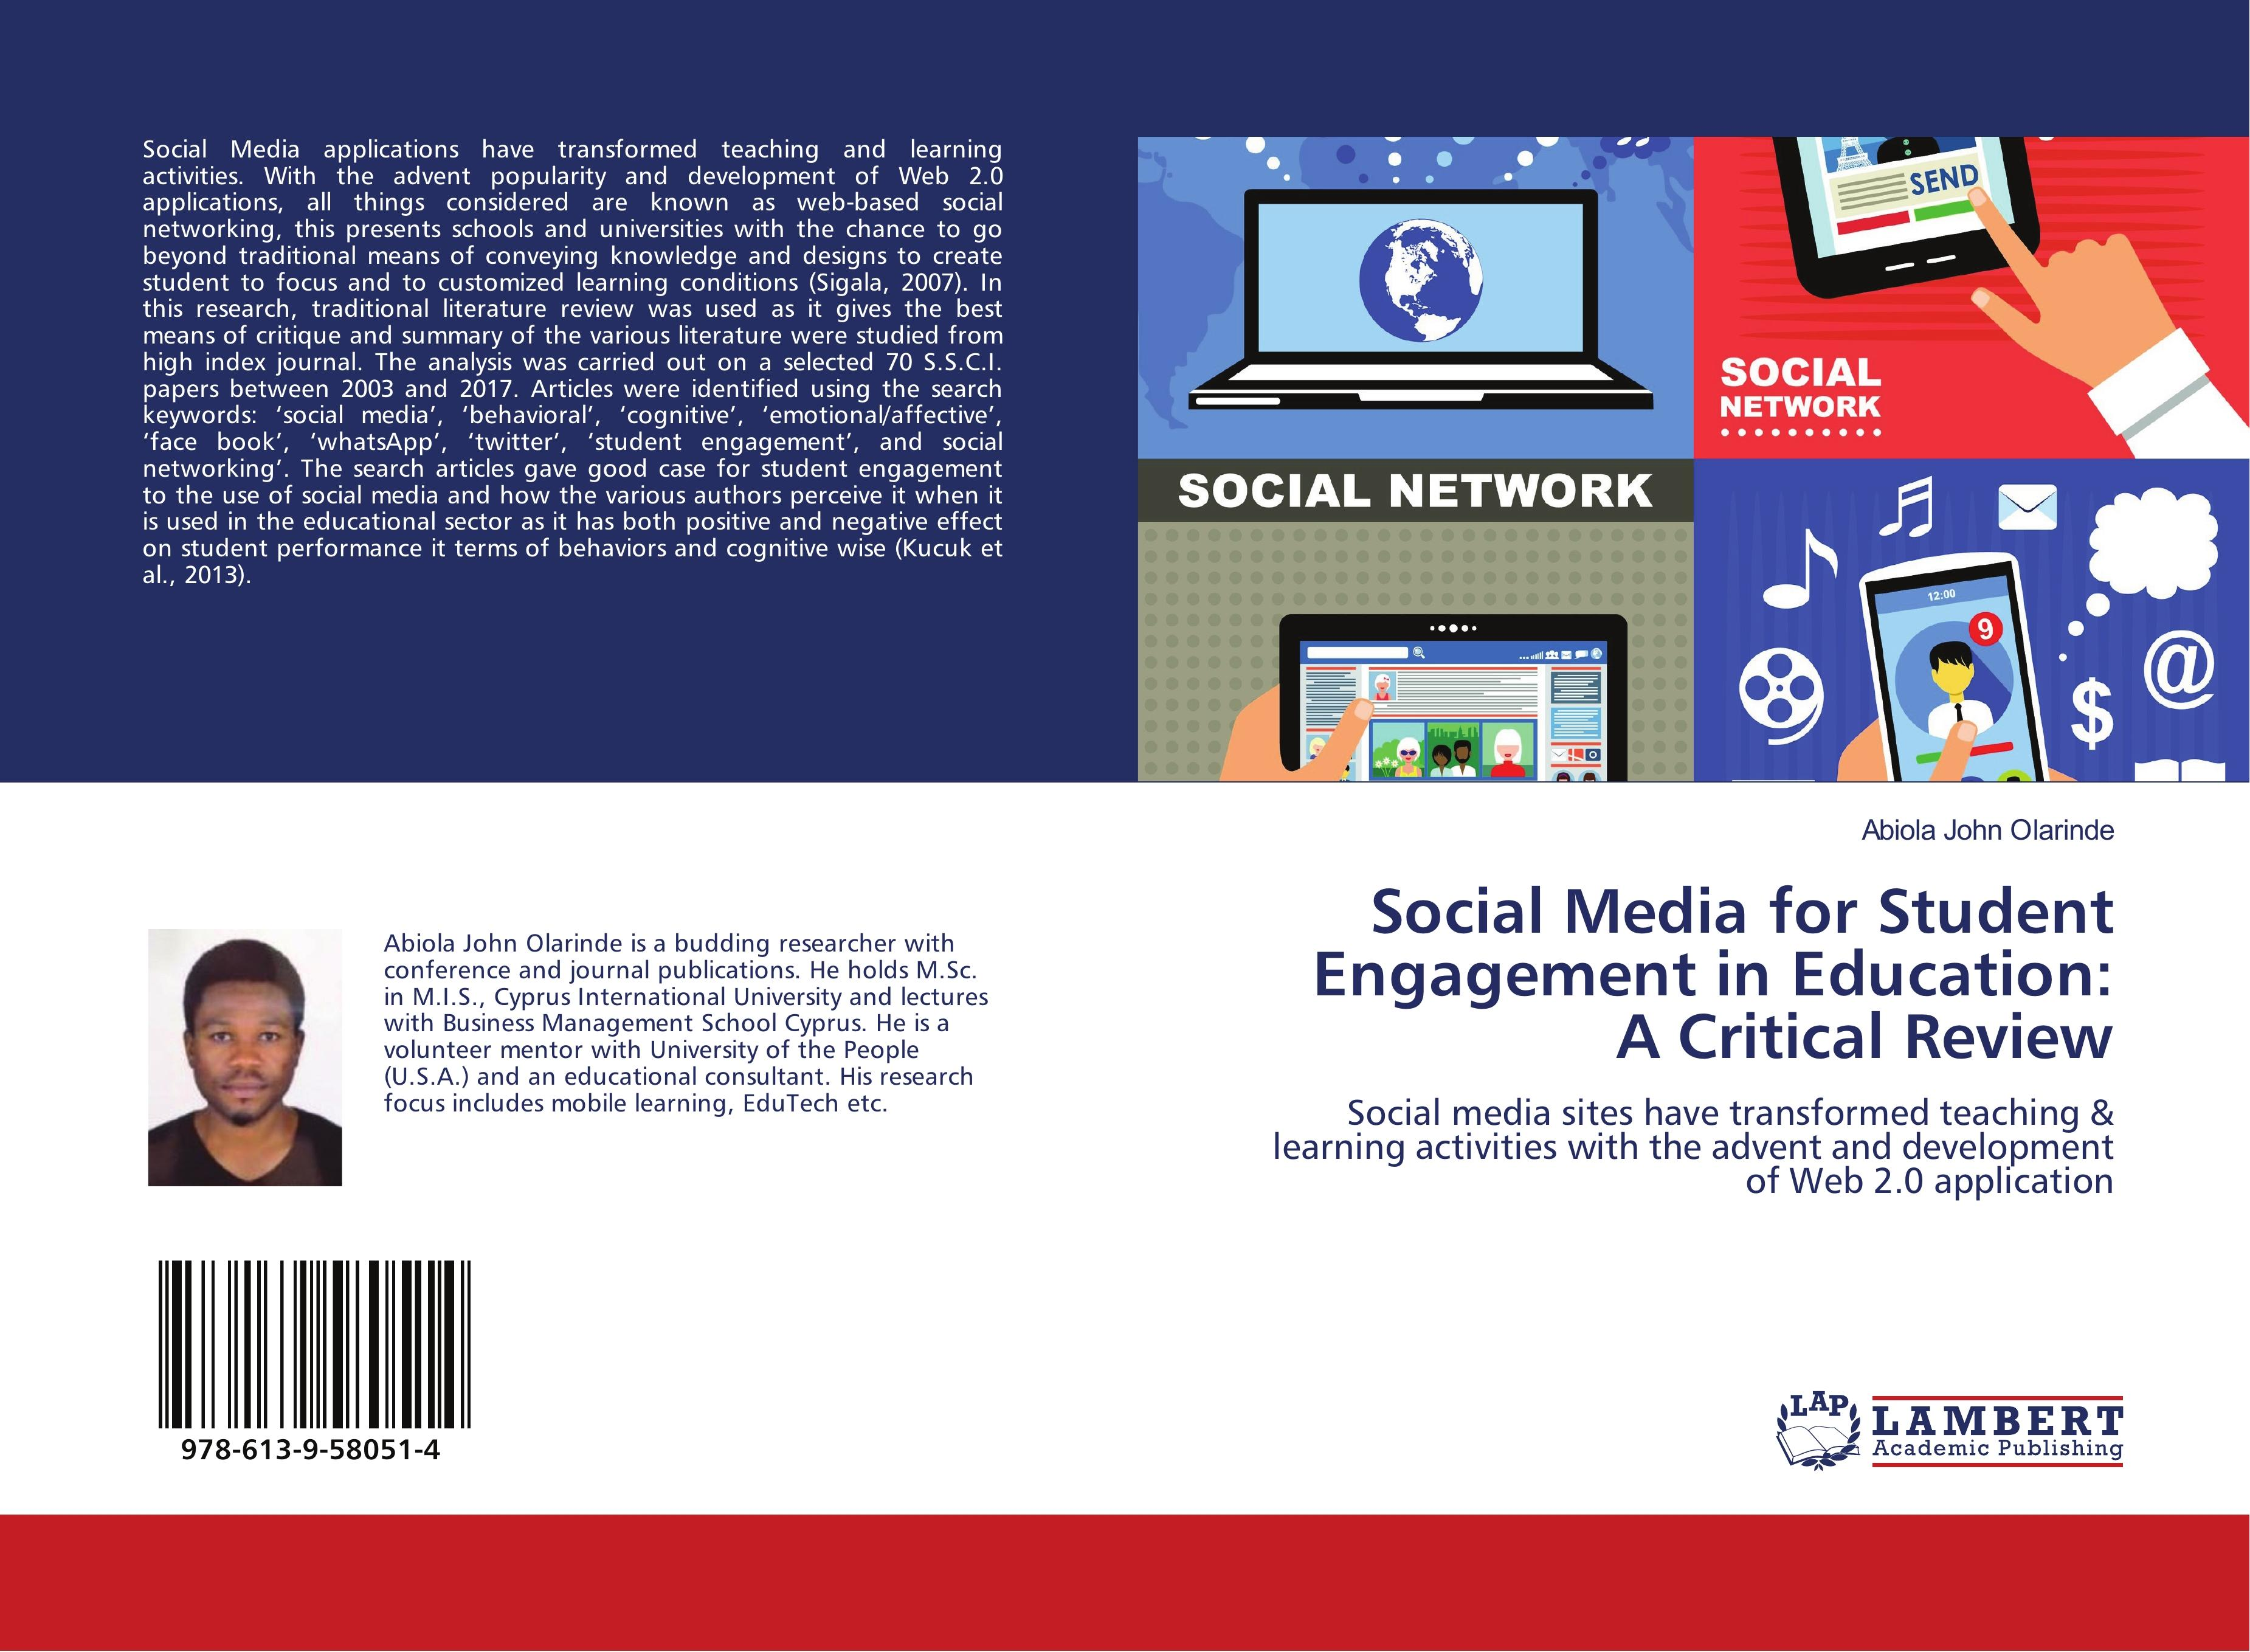 Social Media for Student Engagement in Education: A Critical Review  Social media sites have transformed teaching & learning activities with the advent and development of Web 2.0 application  Buch - Olarinde, Abiola John